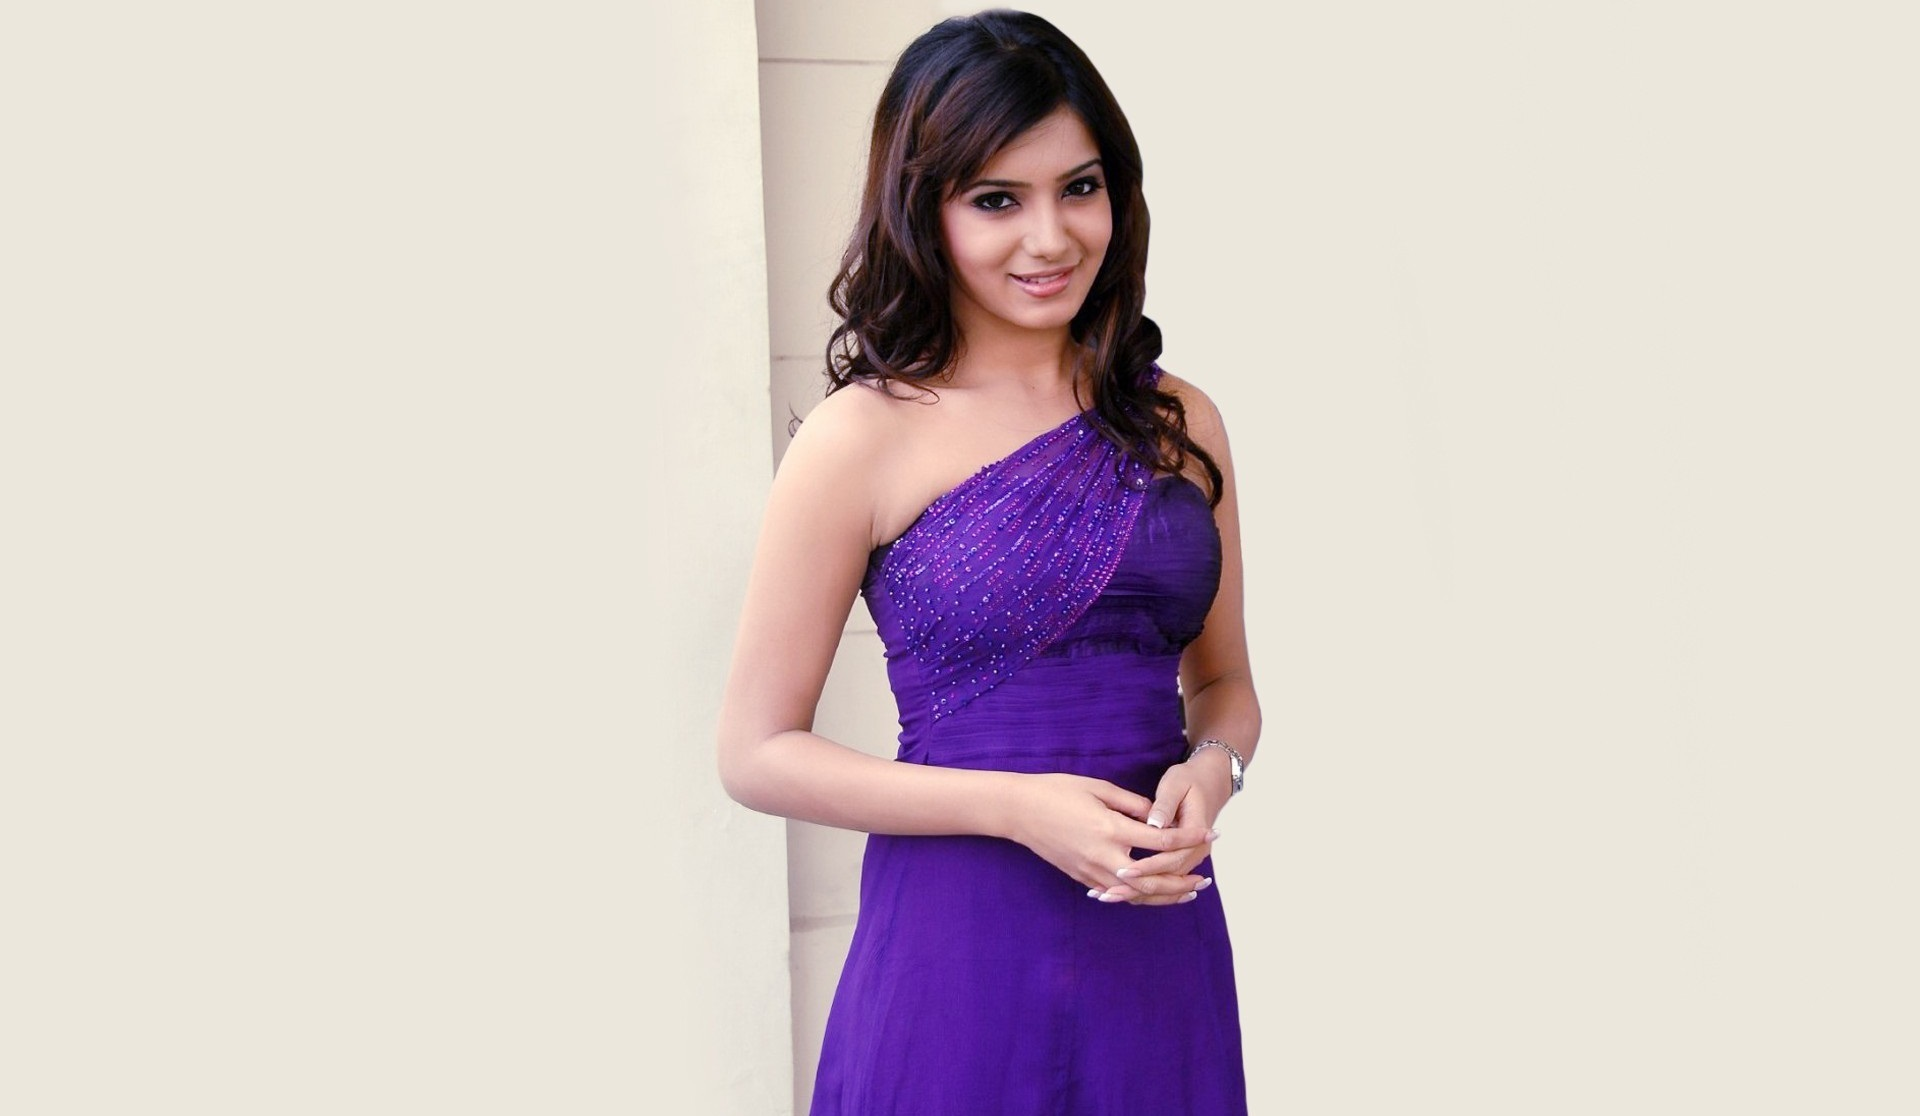 samantha hot photos in sexy dress and hd wallpaper | welcomenri